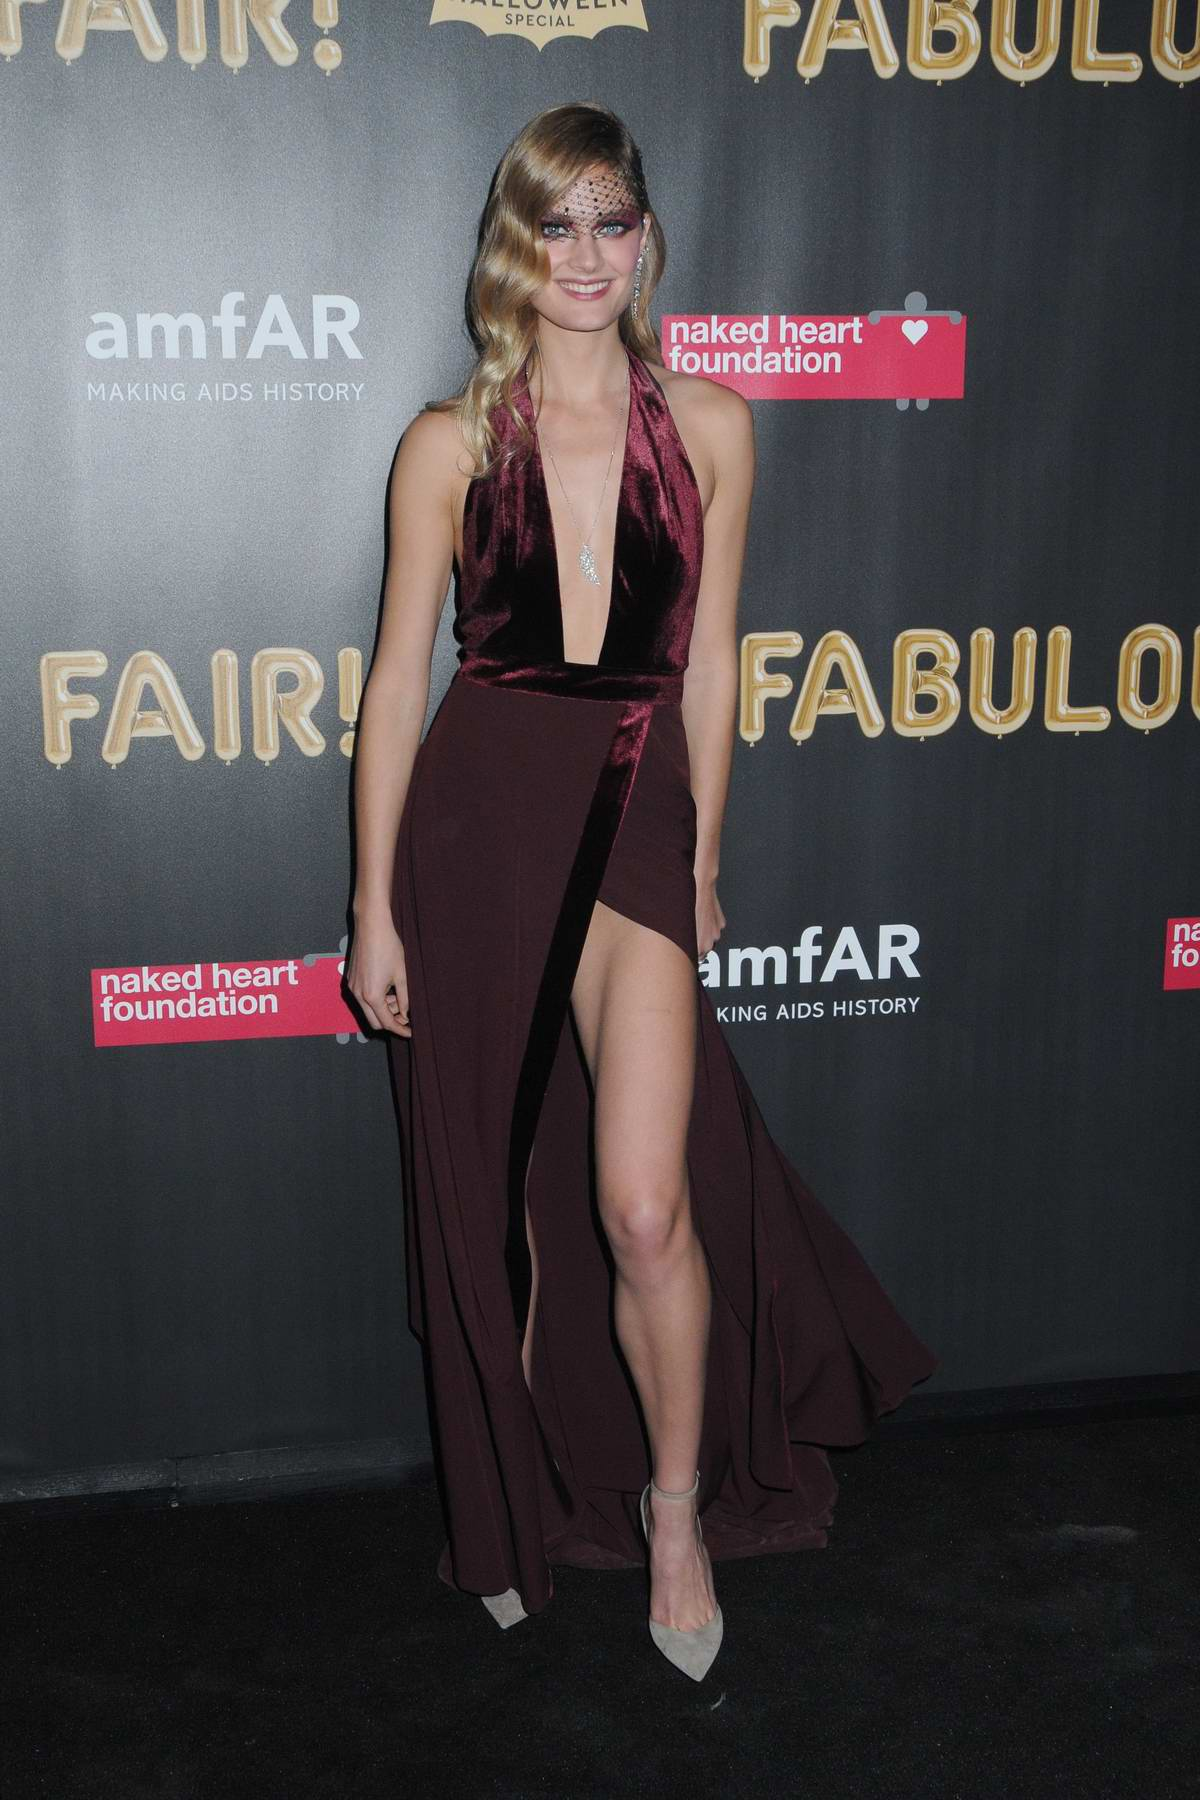 Constance Jablonski at the 2017 amfAR Fabulous Fund Fair at Skylight Clarkson SQ in New York City